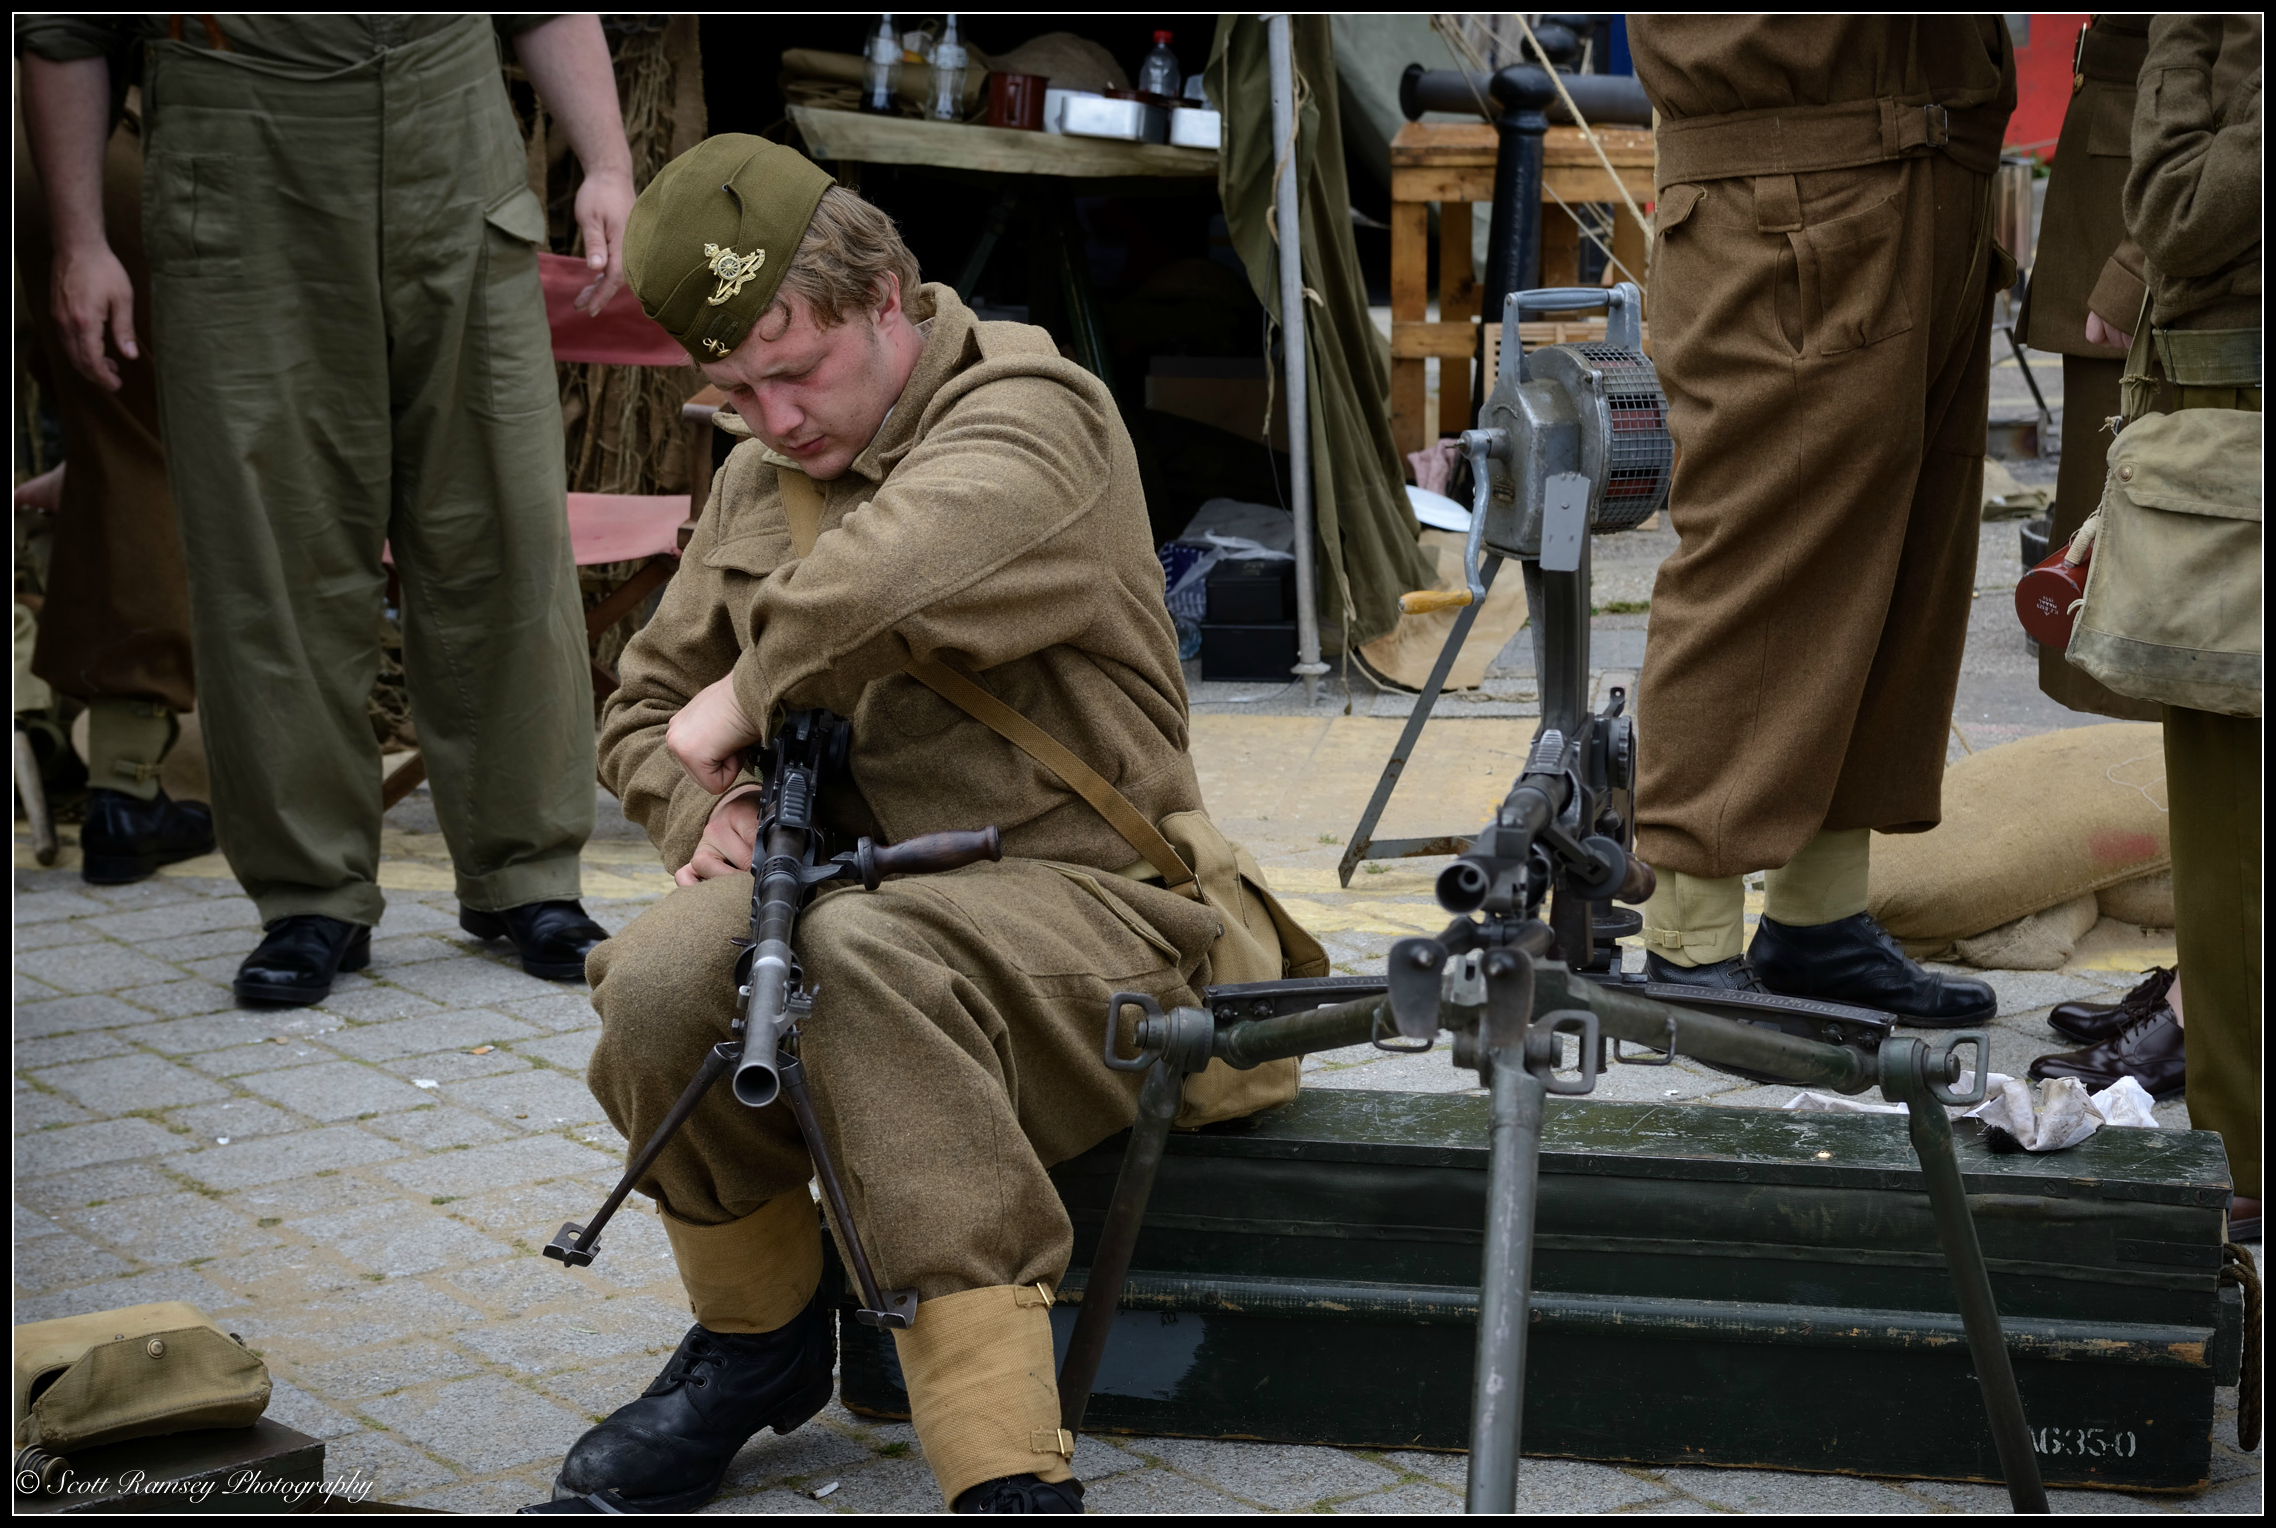 A historical military re-enactor dressed in a WW2 British uniformcleans his gun during the weekend of events to commemorate the 75th anniversary of Operation Dynamo in Ramsgate, Kent, UK.©Scott Ramsey Photography